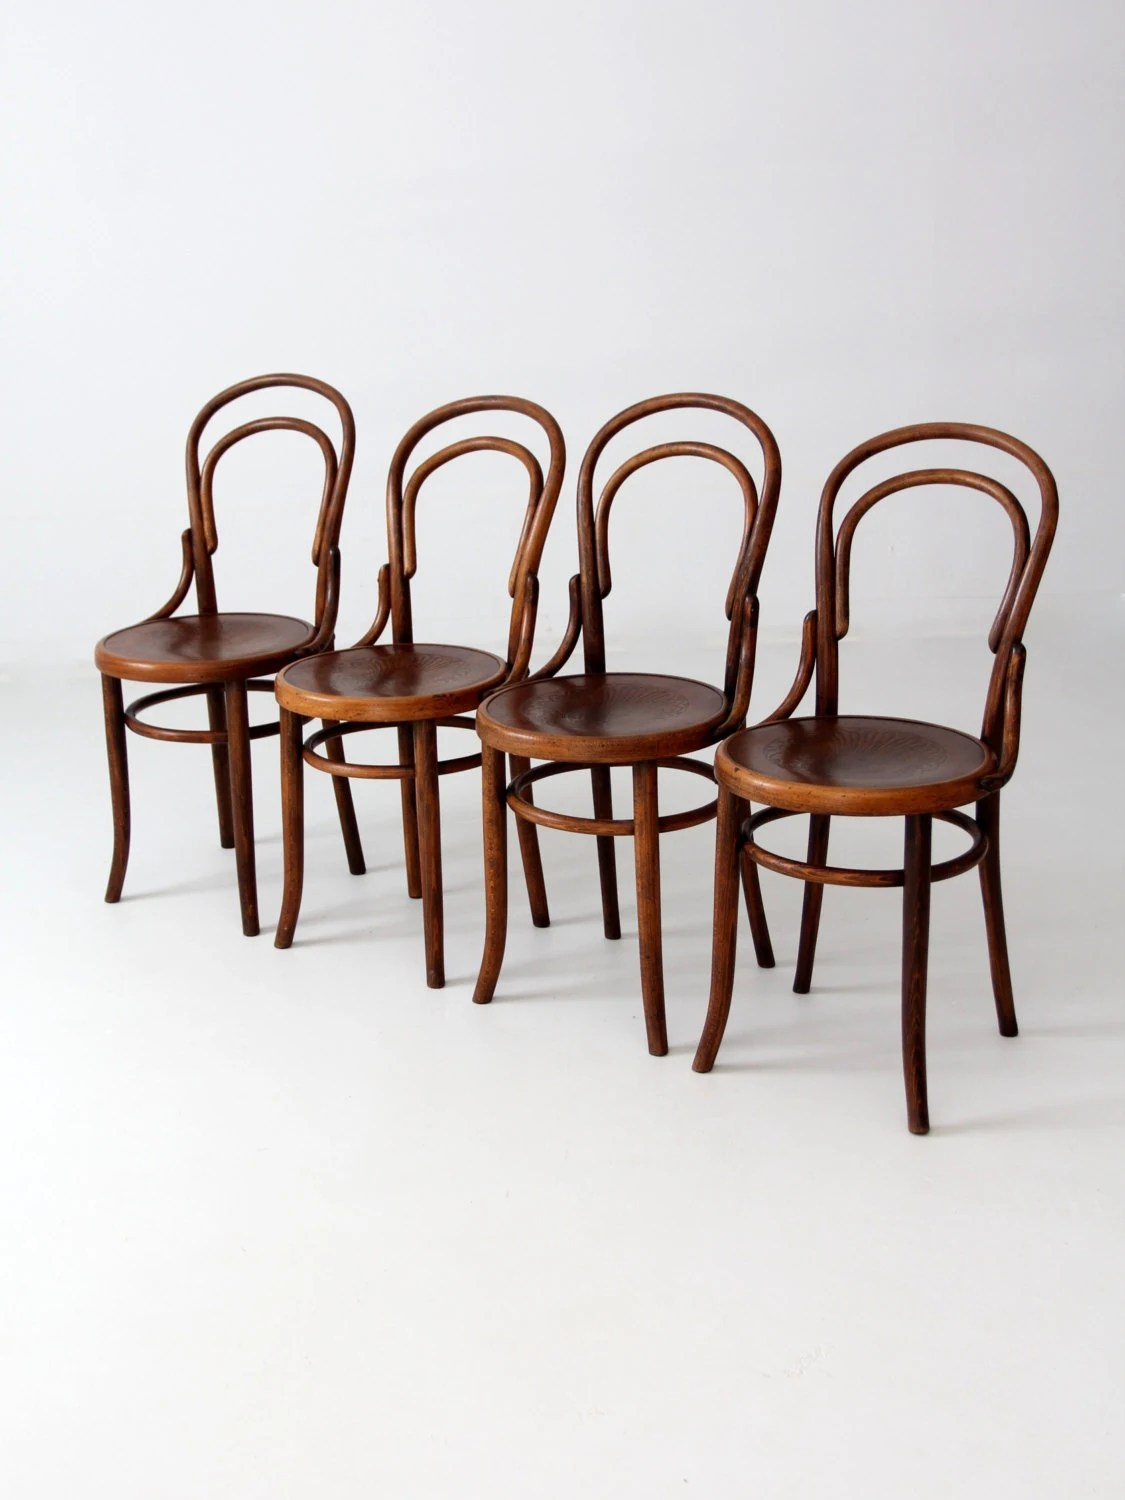 Bent Wood Chairs Antique Fischel Bentwood Chair Set Of 4